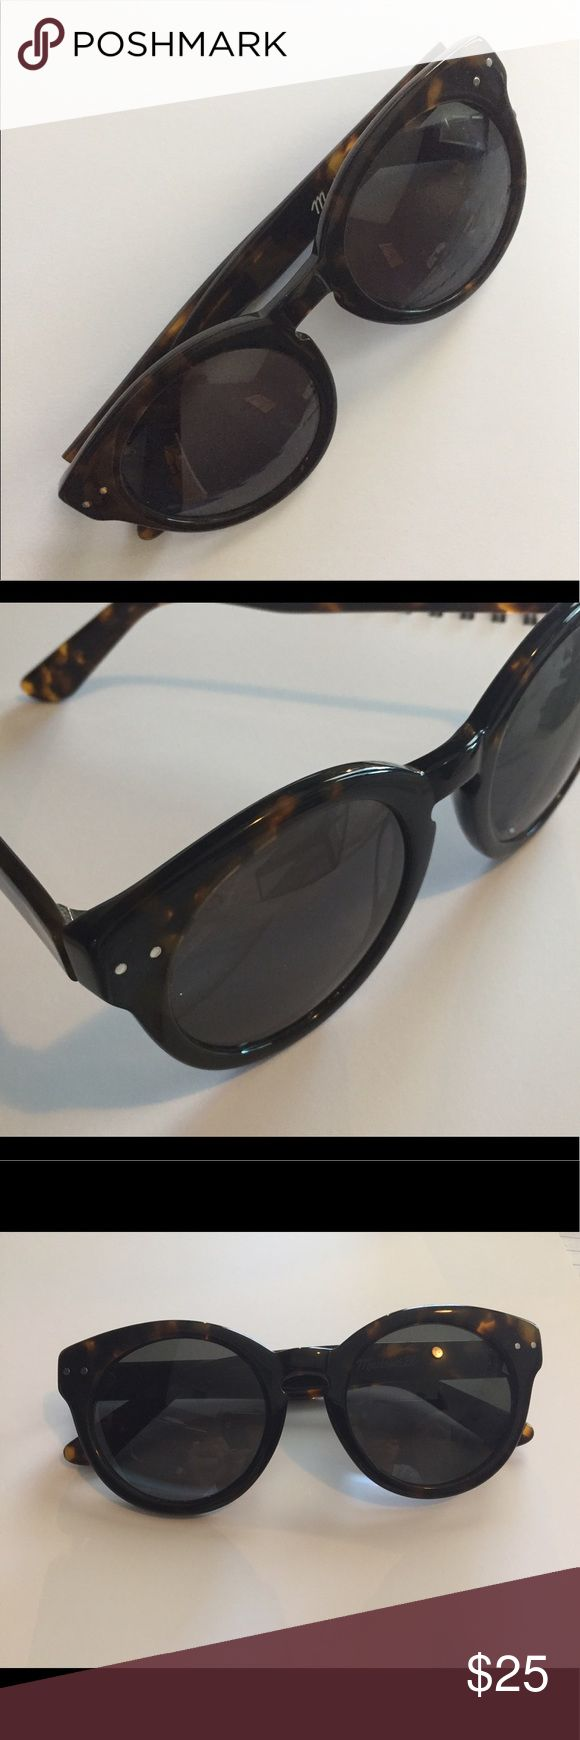 madewell tortoise sunglasses women's rounded tortoise sunglasses. slightly oversized. comes with fabric sunglasses bag. used but in good condition. Madewell Accessories Sunglasses